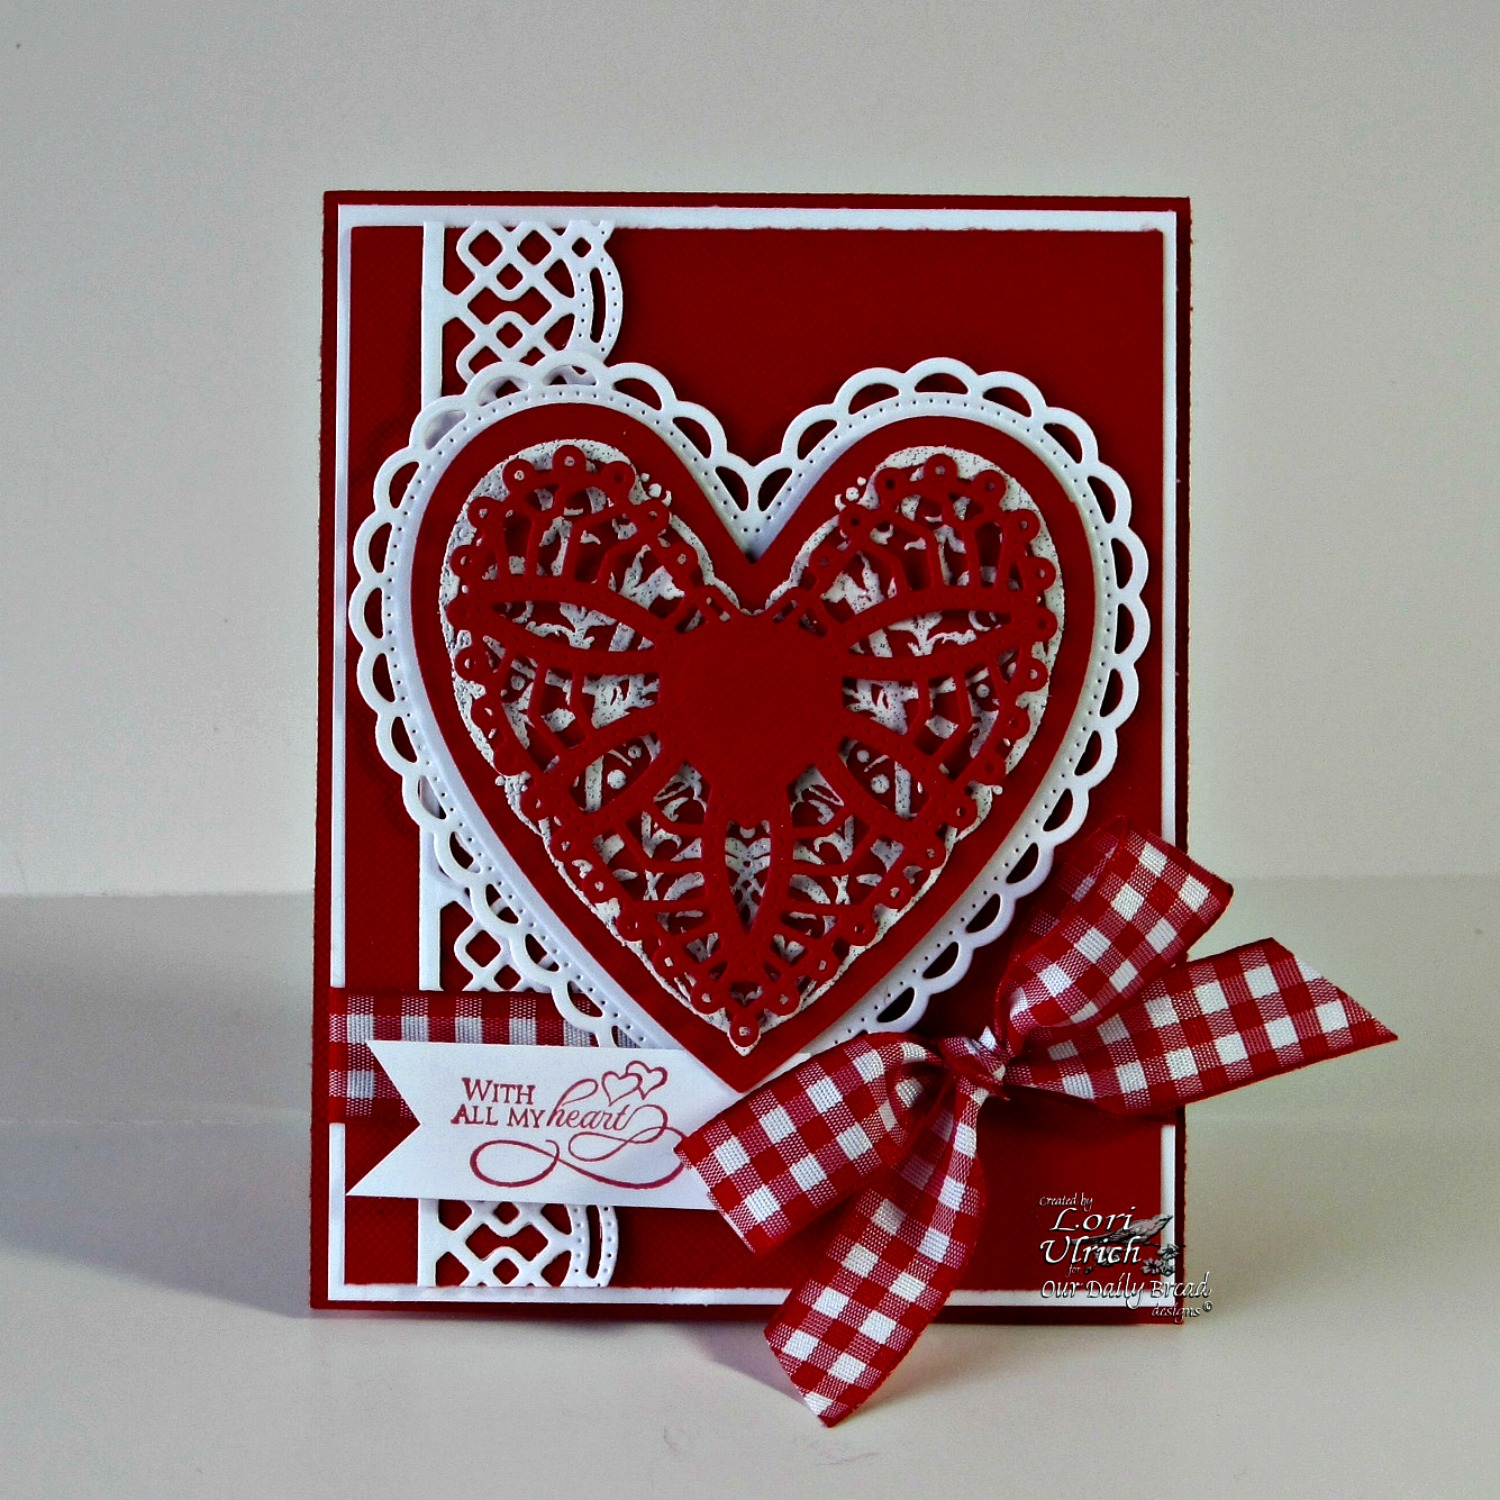 Stamps - Our Daily Bread Designs Bless Your Heart, ODBD Custom Ornate Hearts Die, ODBD Custom Beautiful Borders Dies